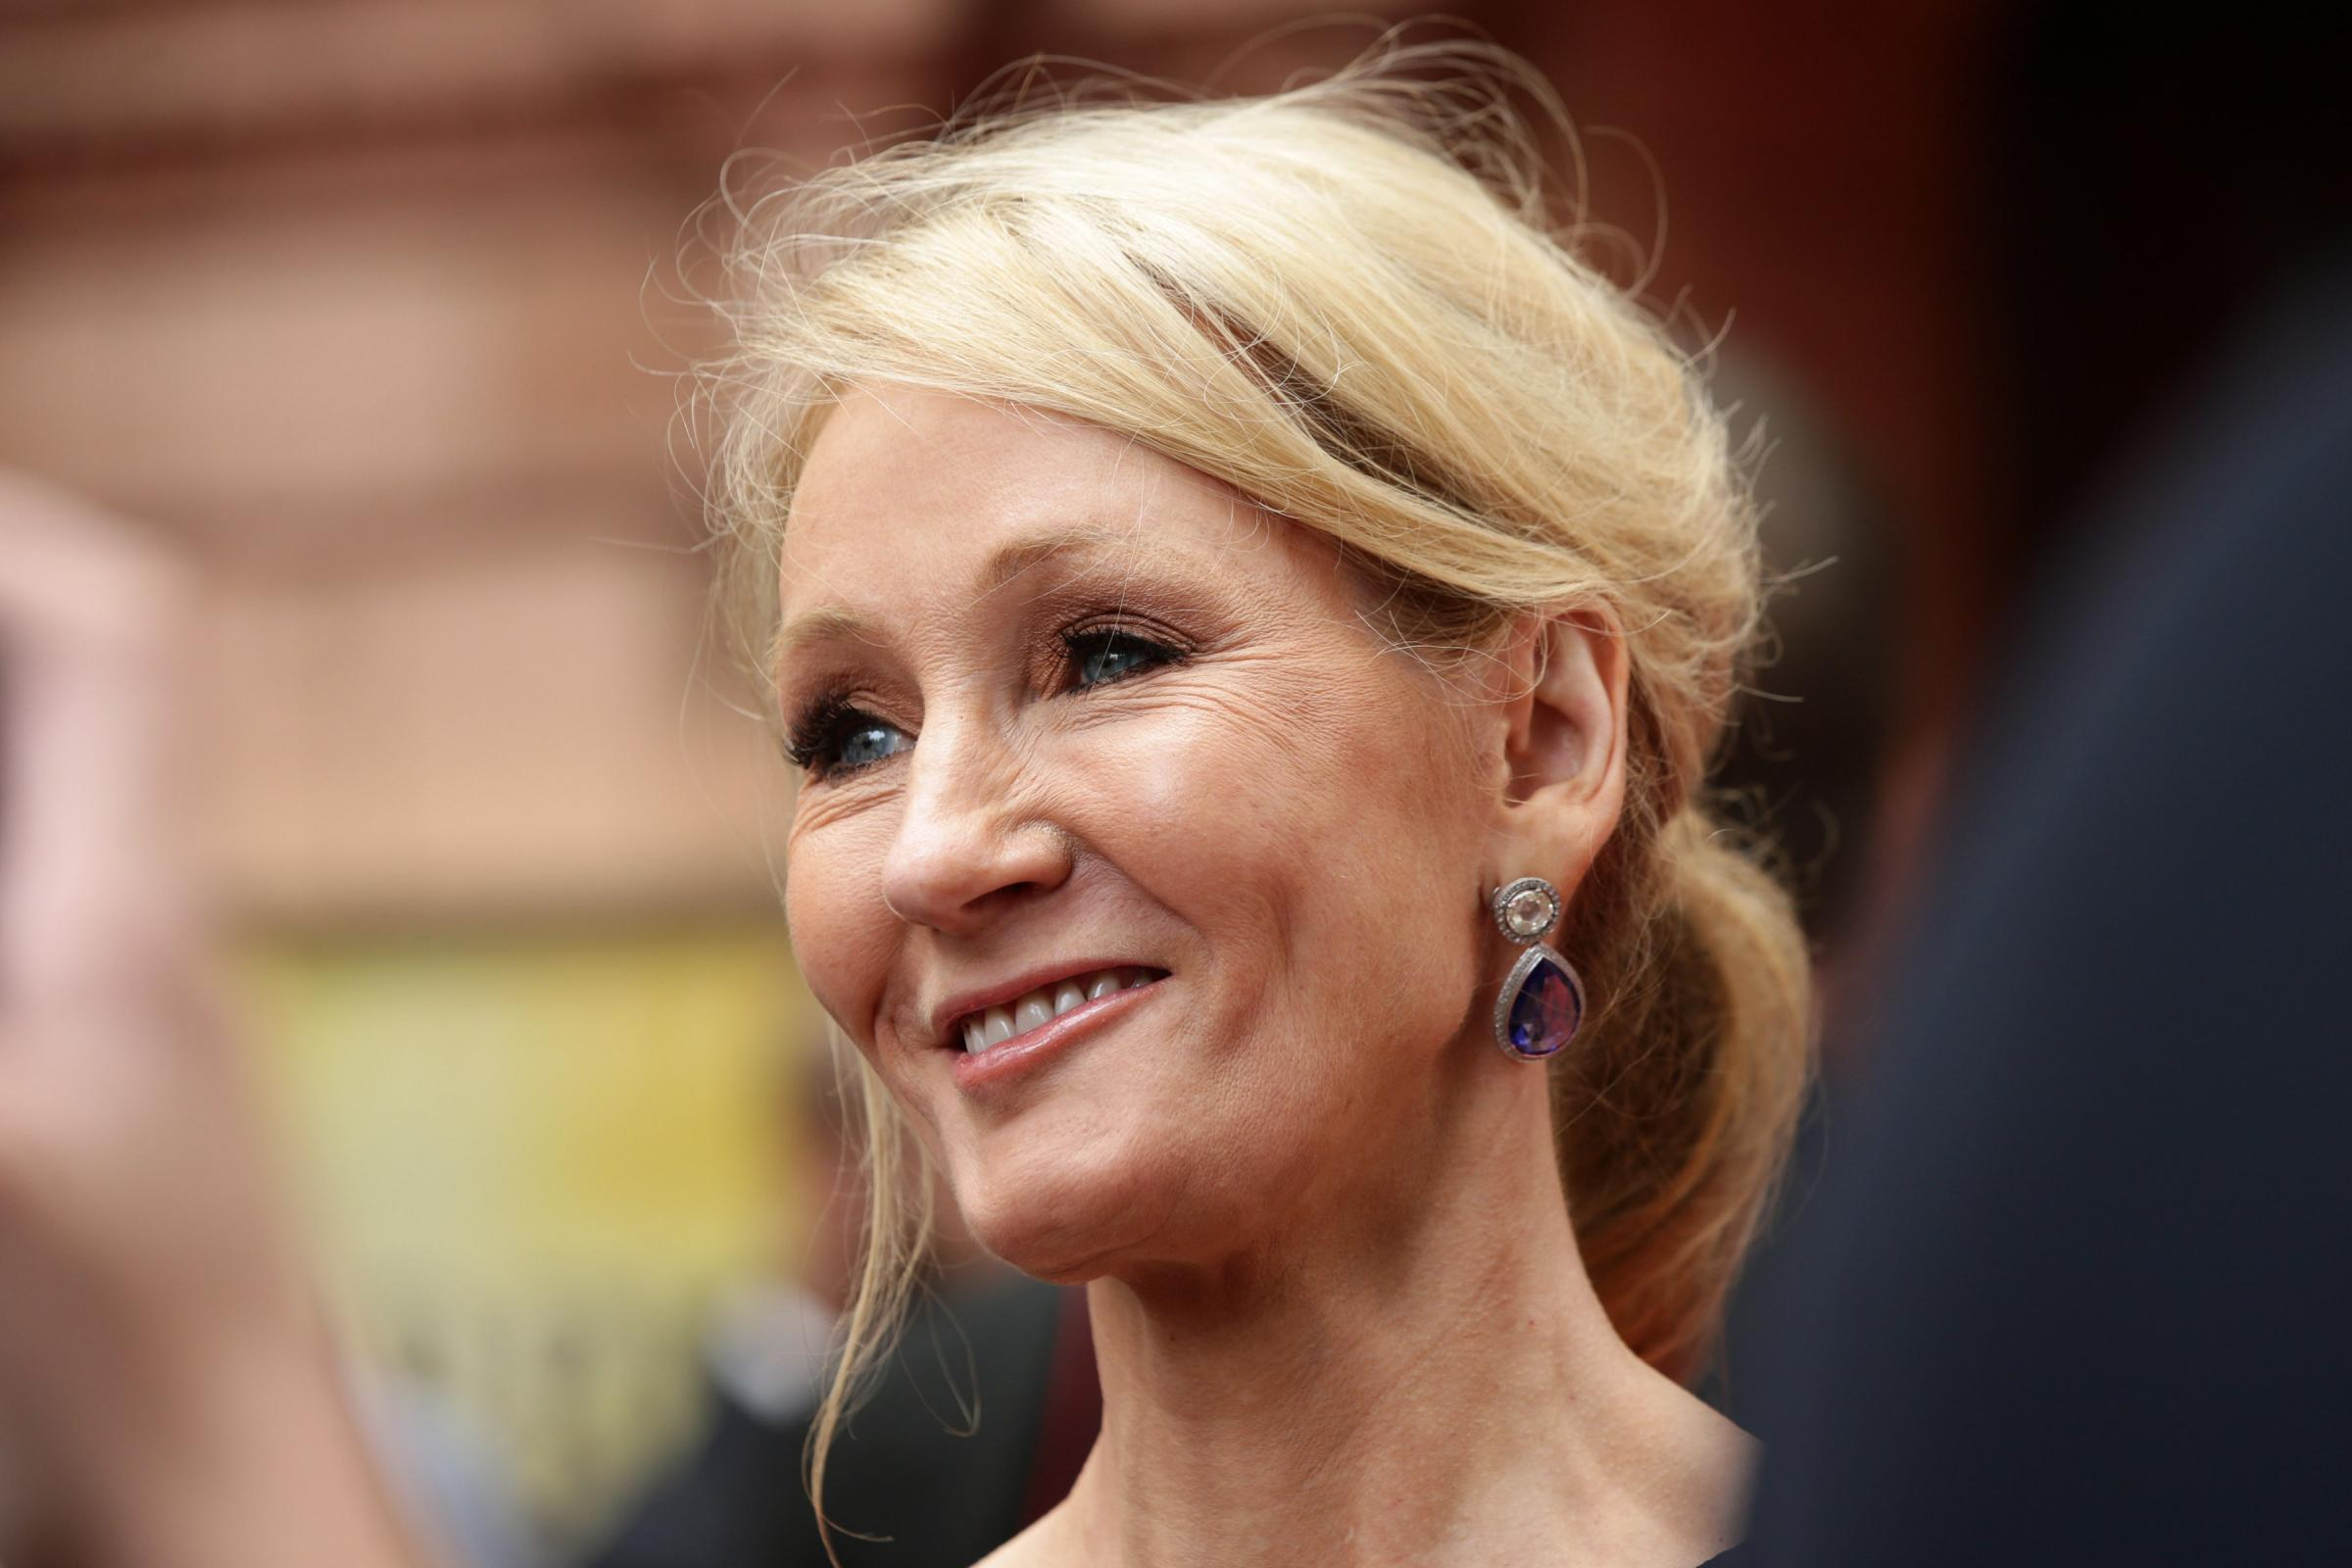 JK Rowling's husband says PA accused of defrauding Harry Potter author was 'good liar'